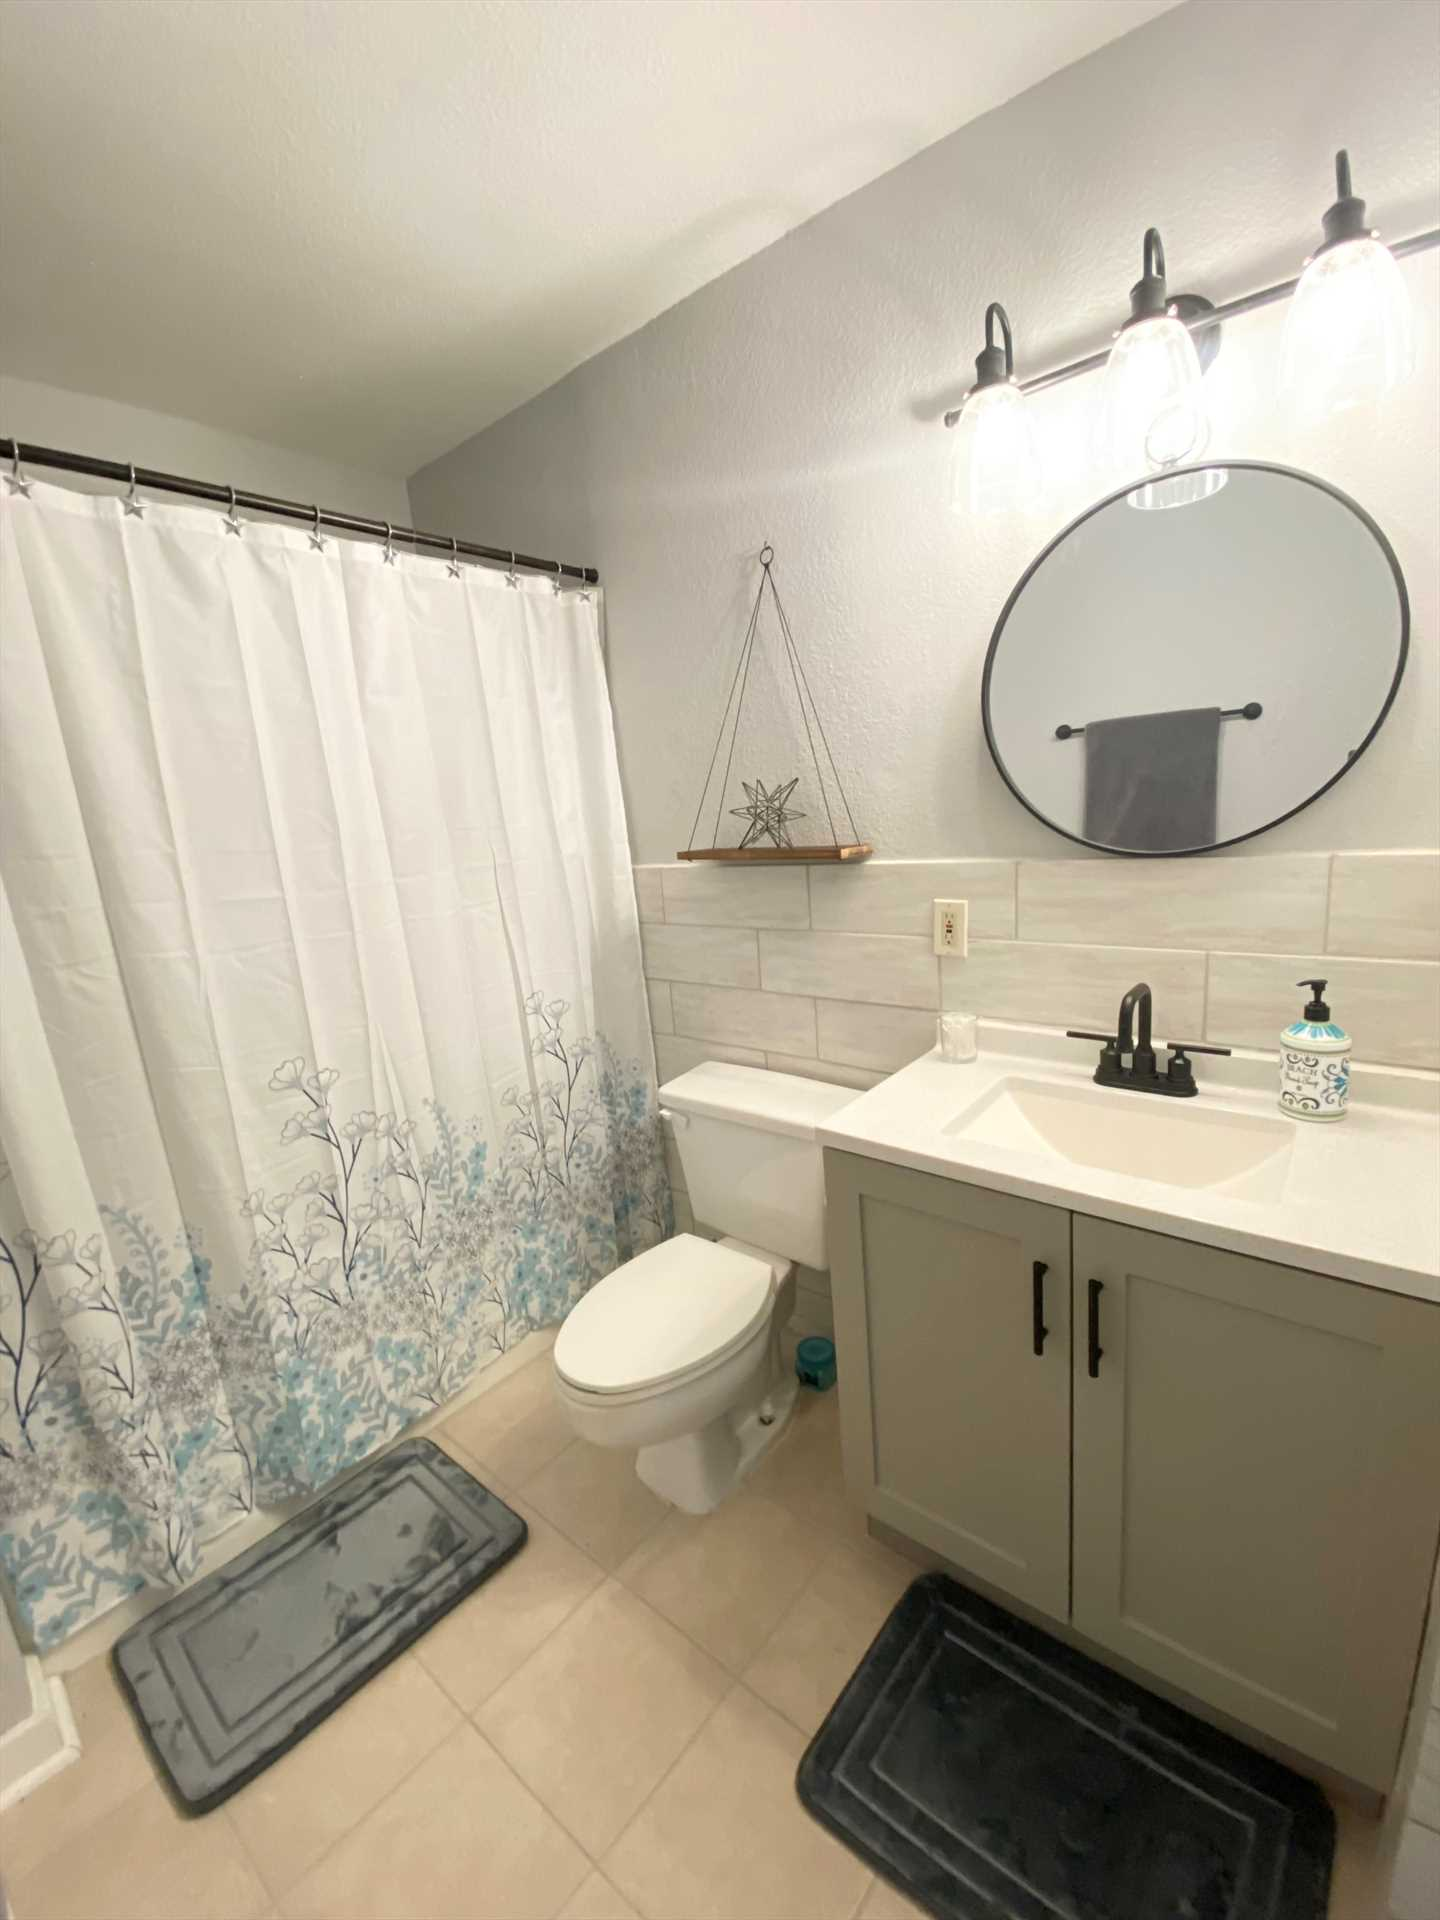 Both baths here are classy and clean, and feature tub and shower combos. Fresh bath linens are provided, as well.